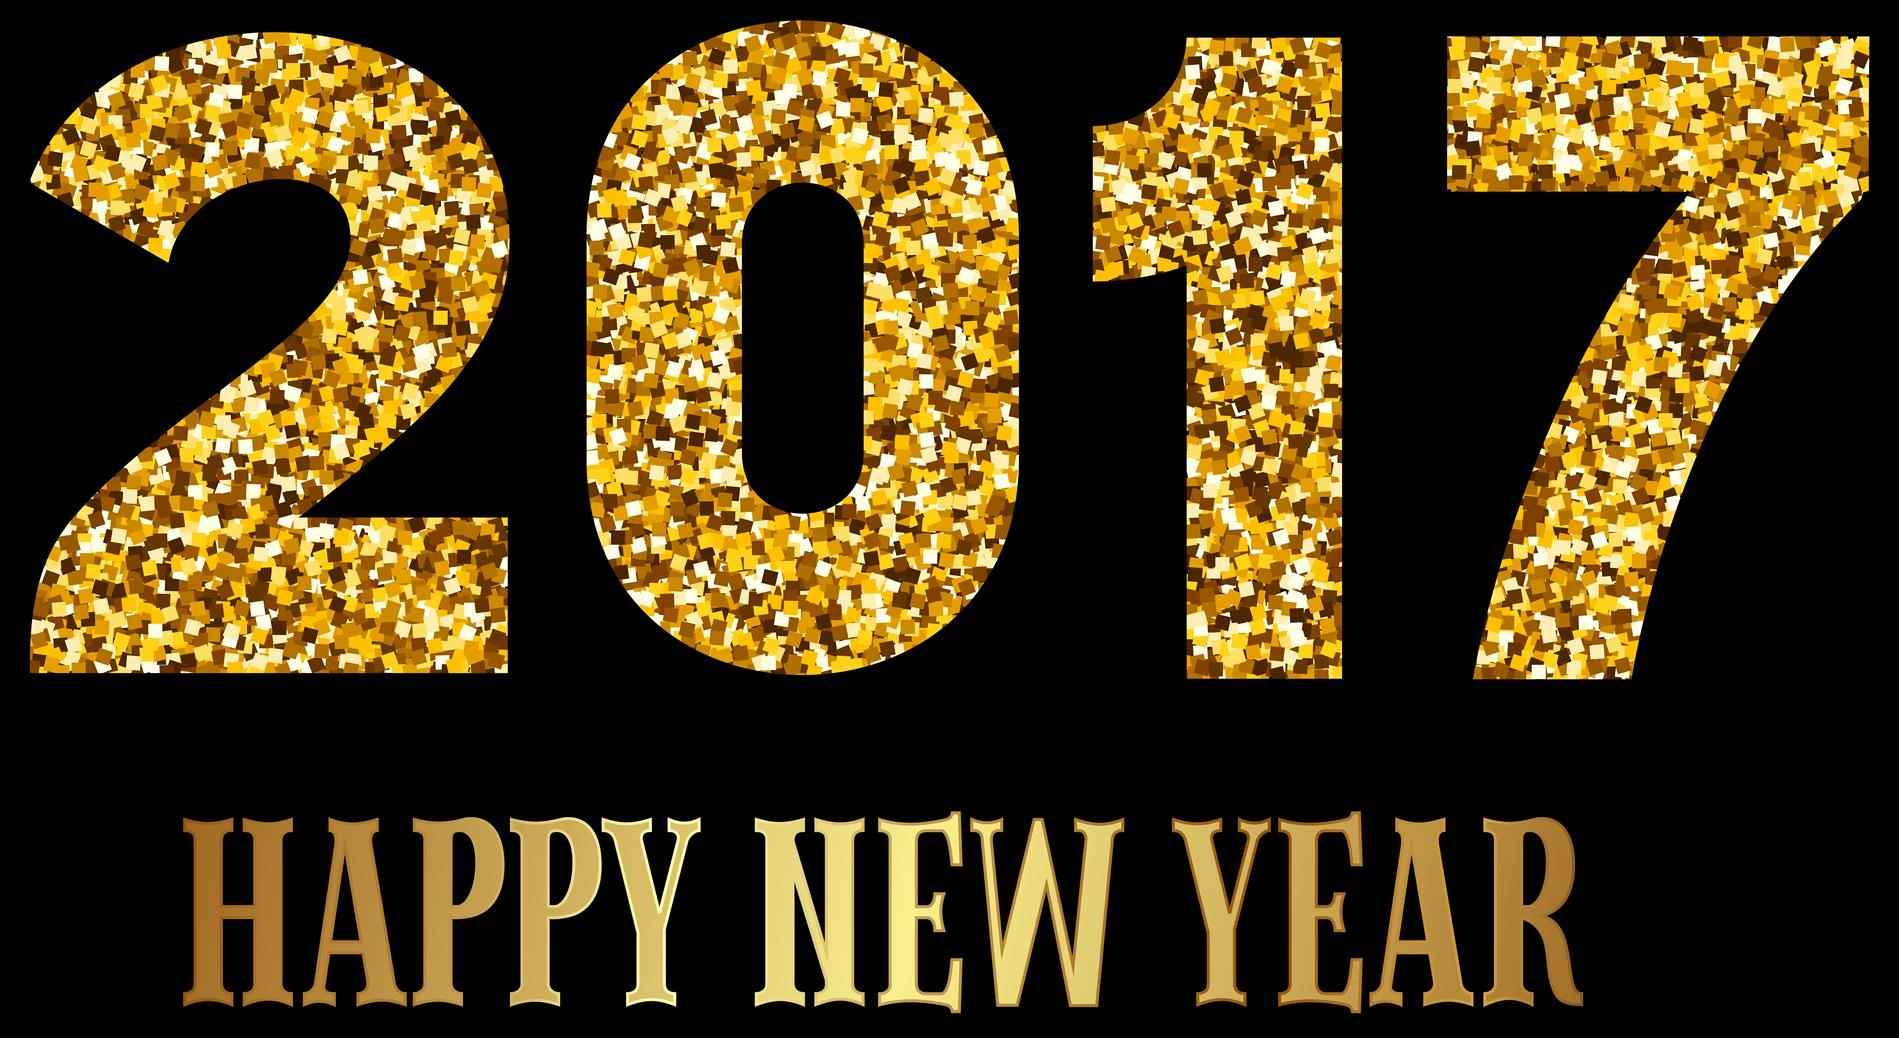 Happy New Year 2018 PNG - 85016